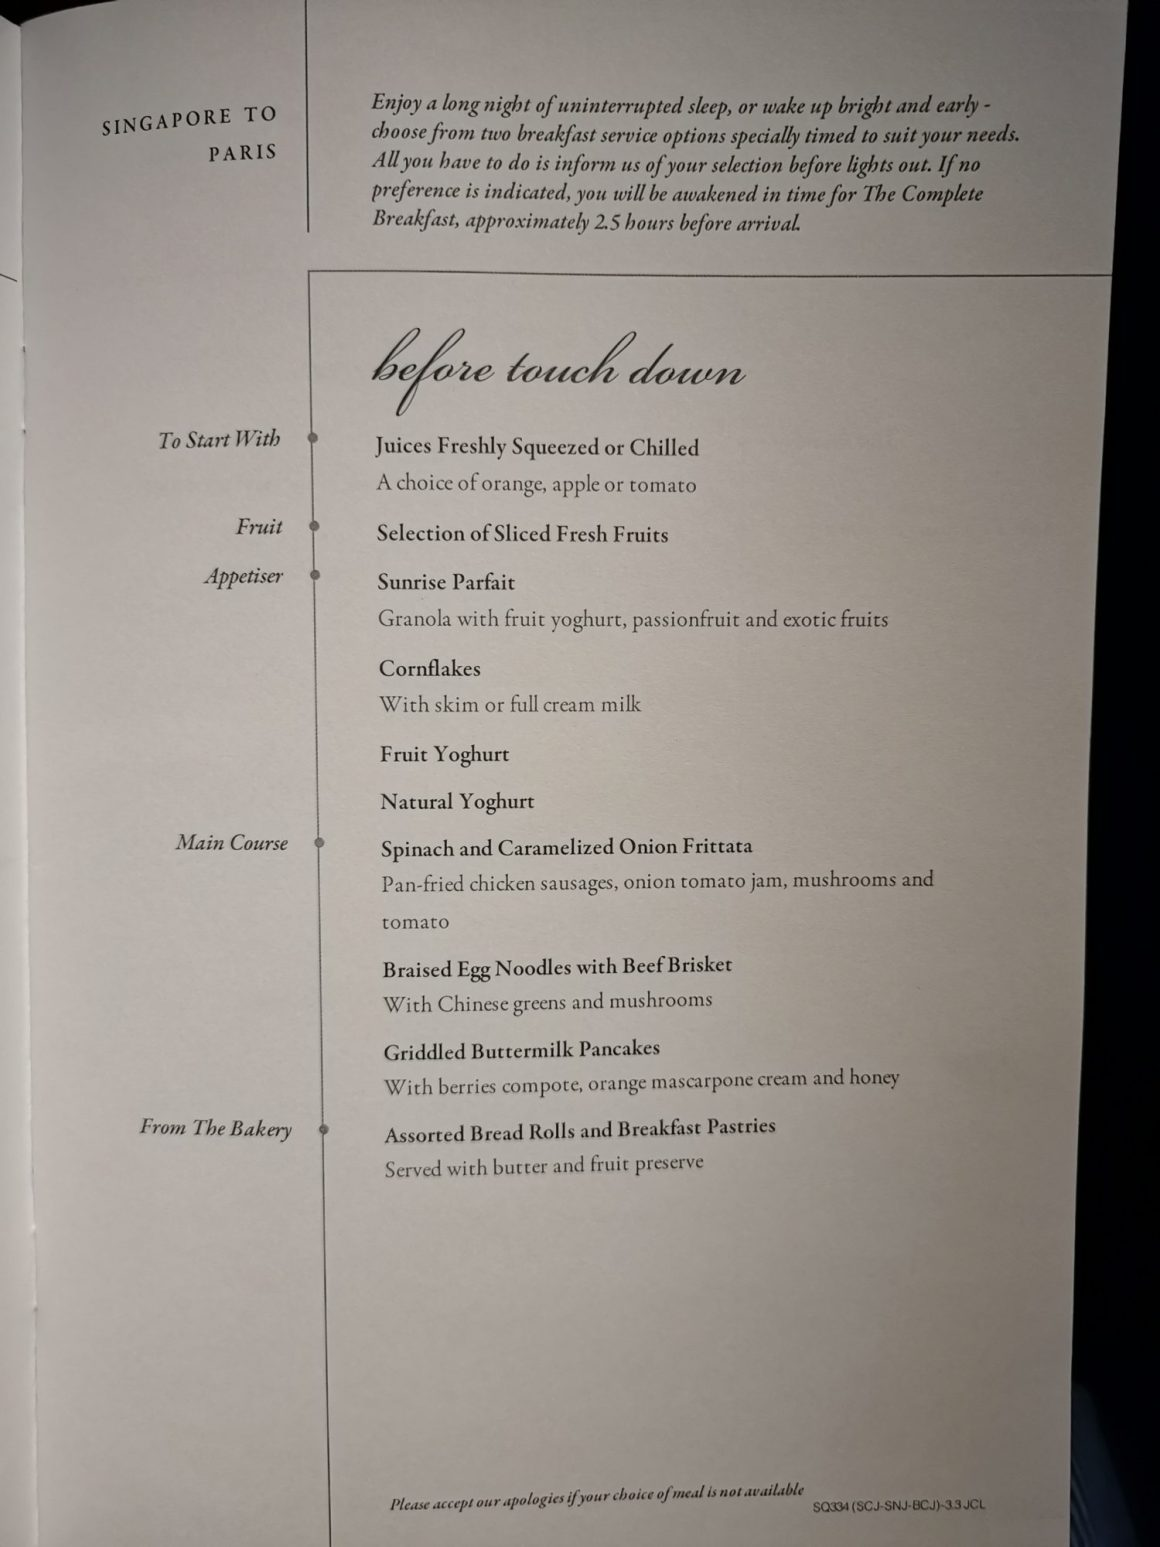 Singapore Airlines Business Class SQ334 From Singapore To Paris – Before landing Menu